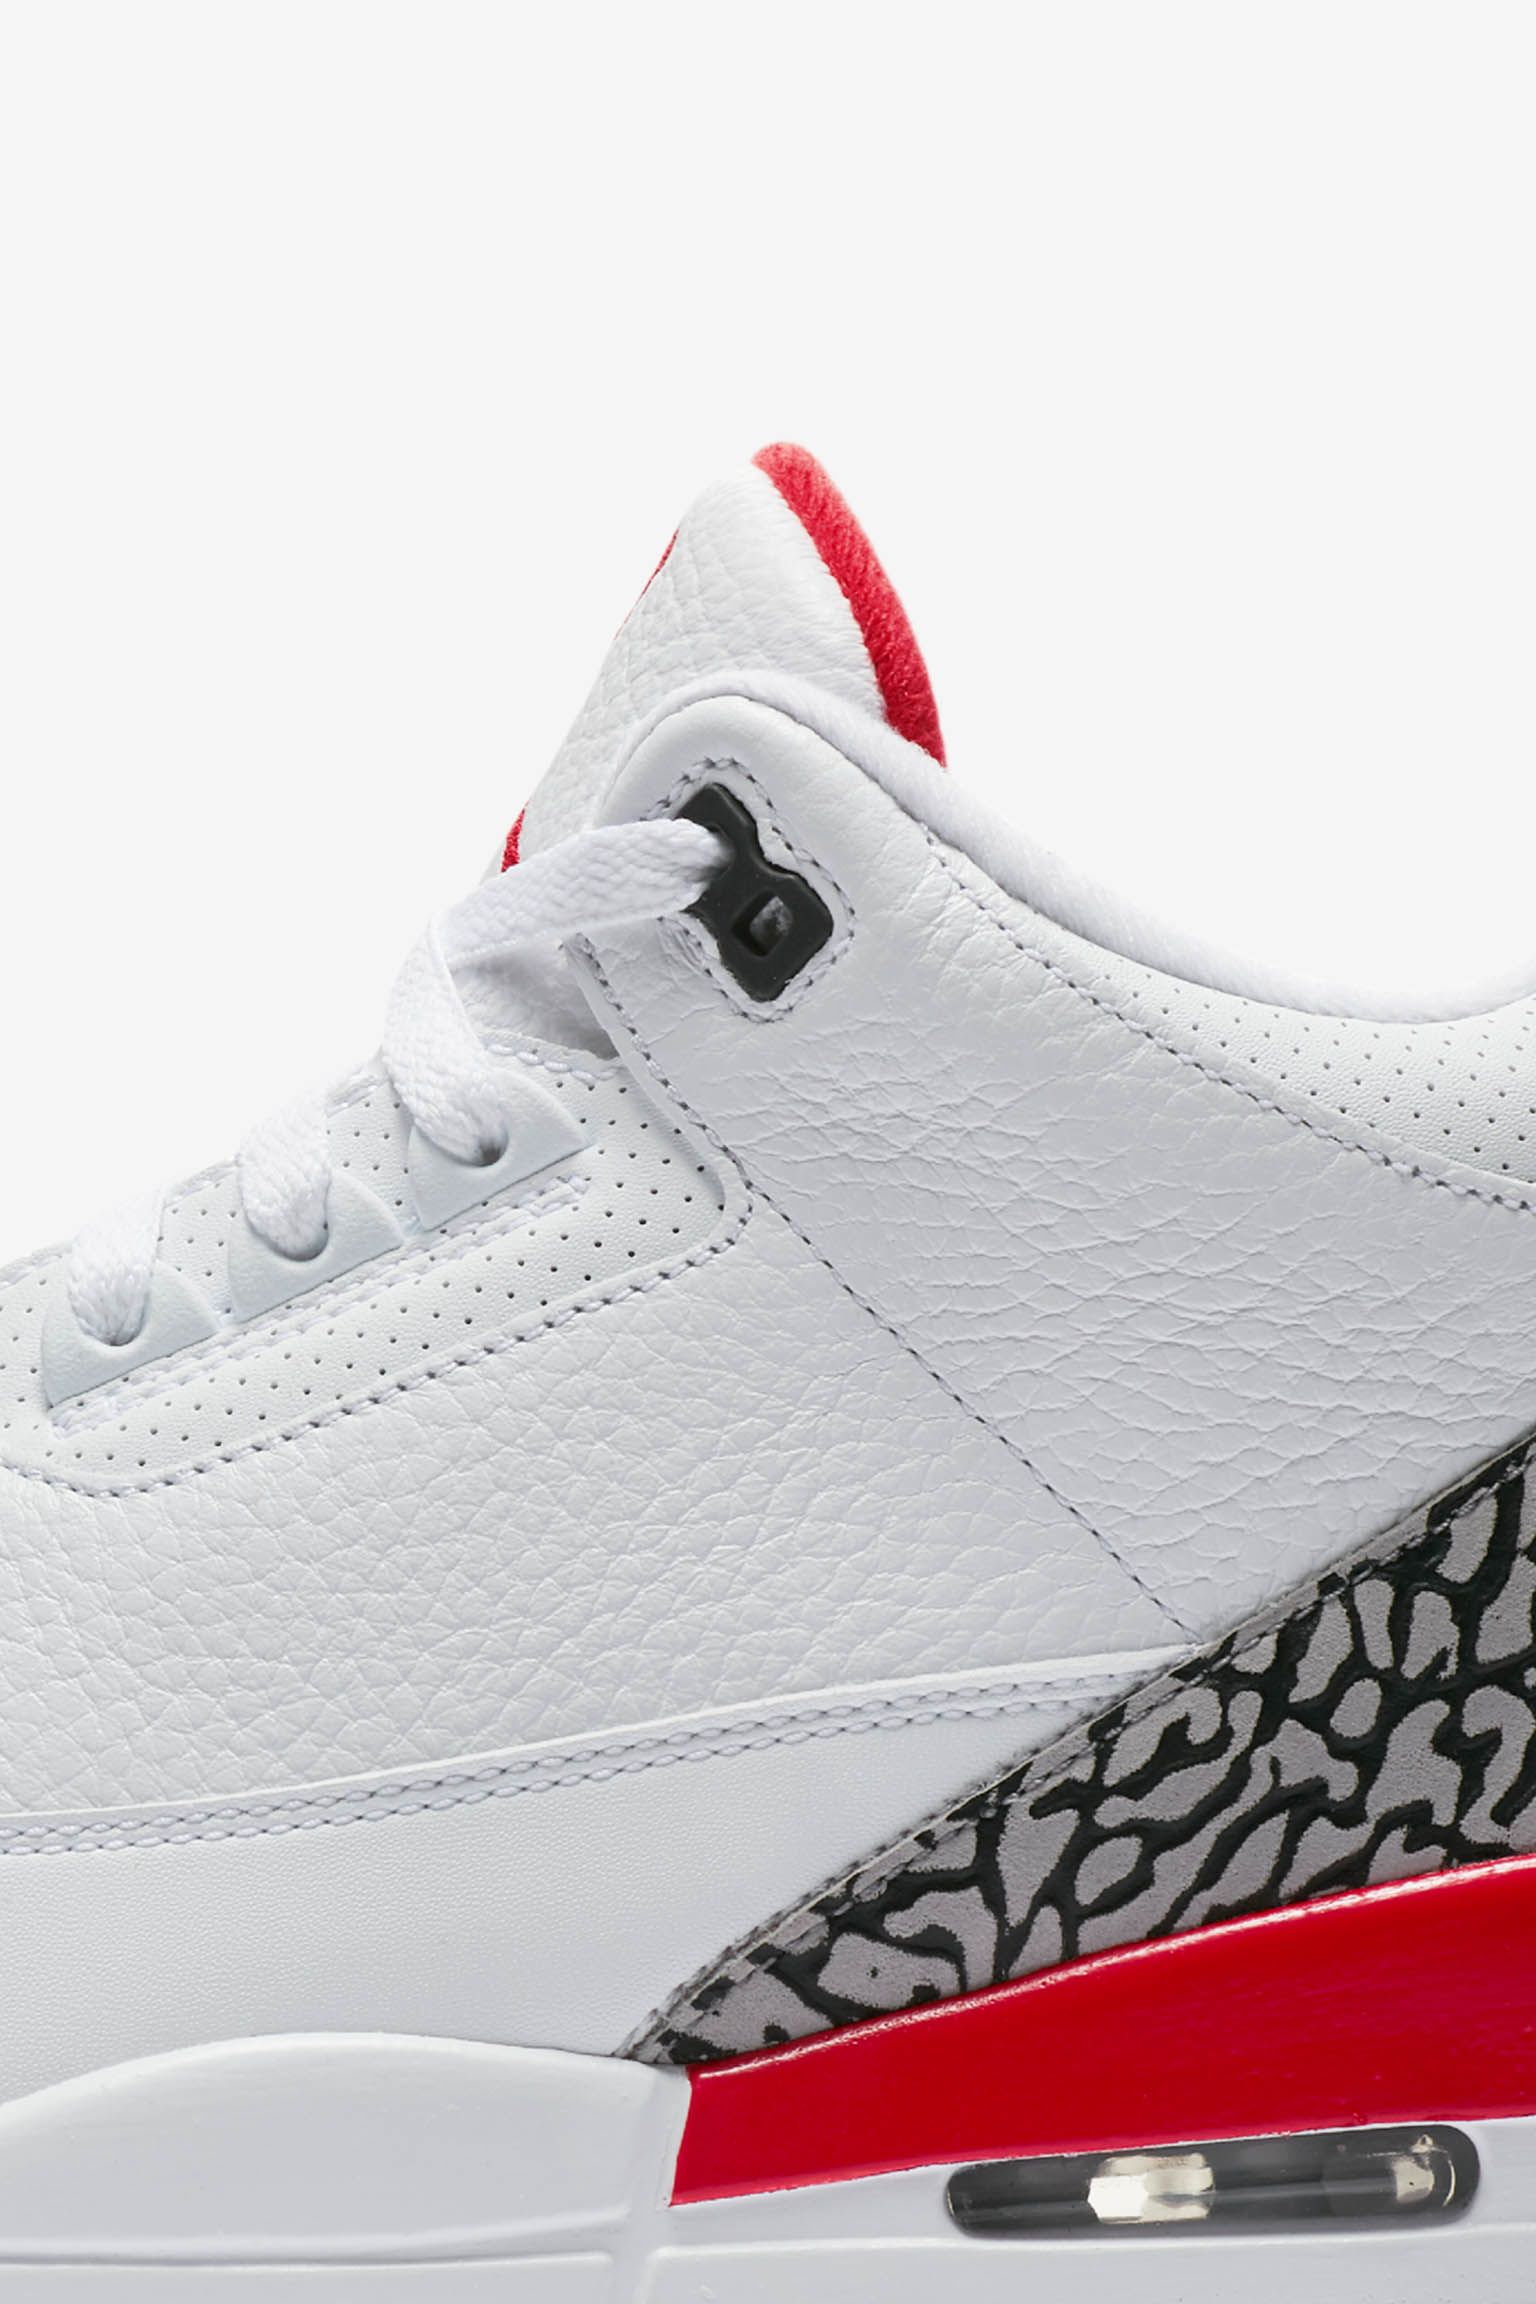 Air Jordan 3 'Hall of Fame' Release Date